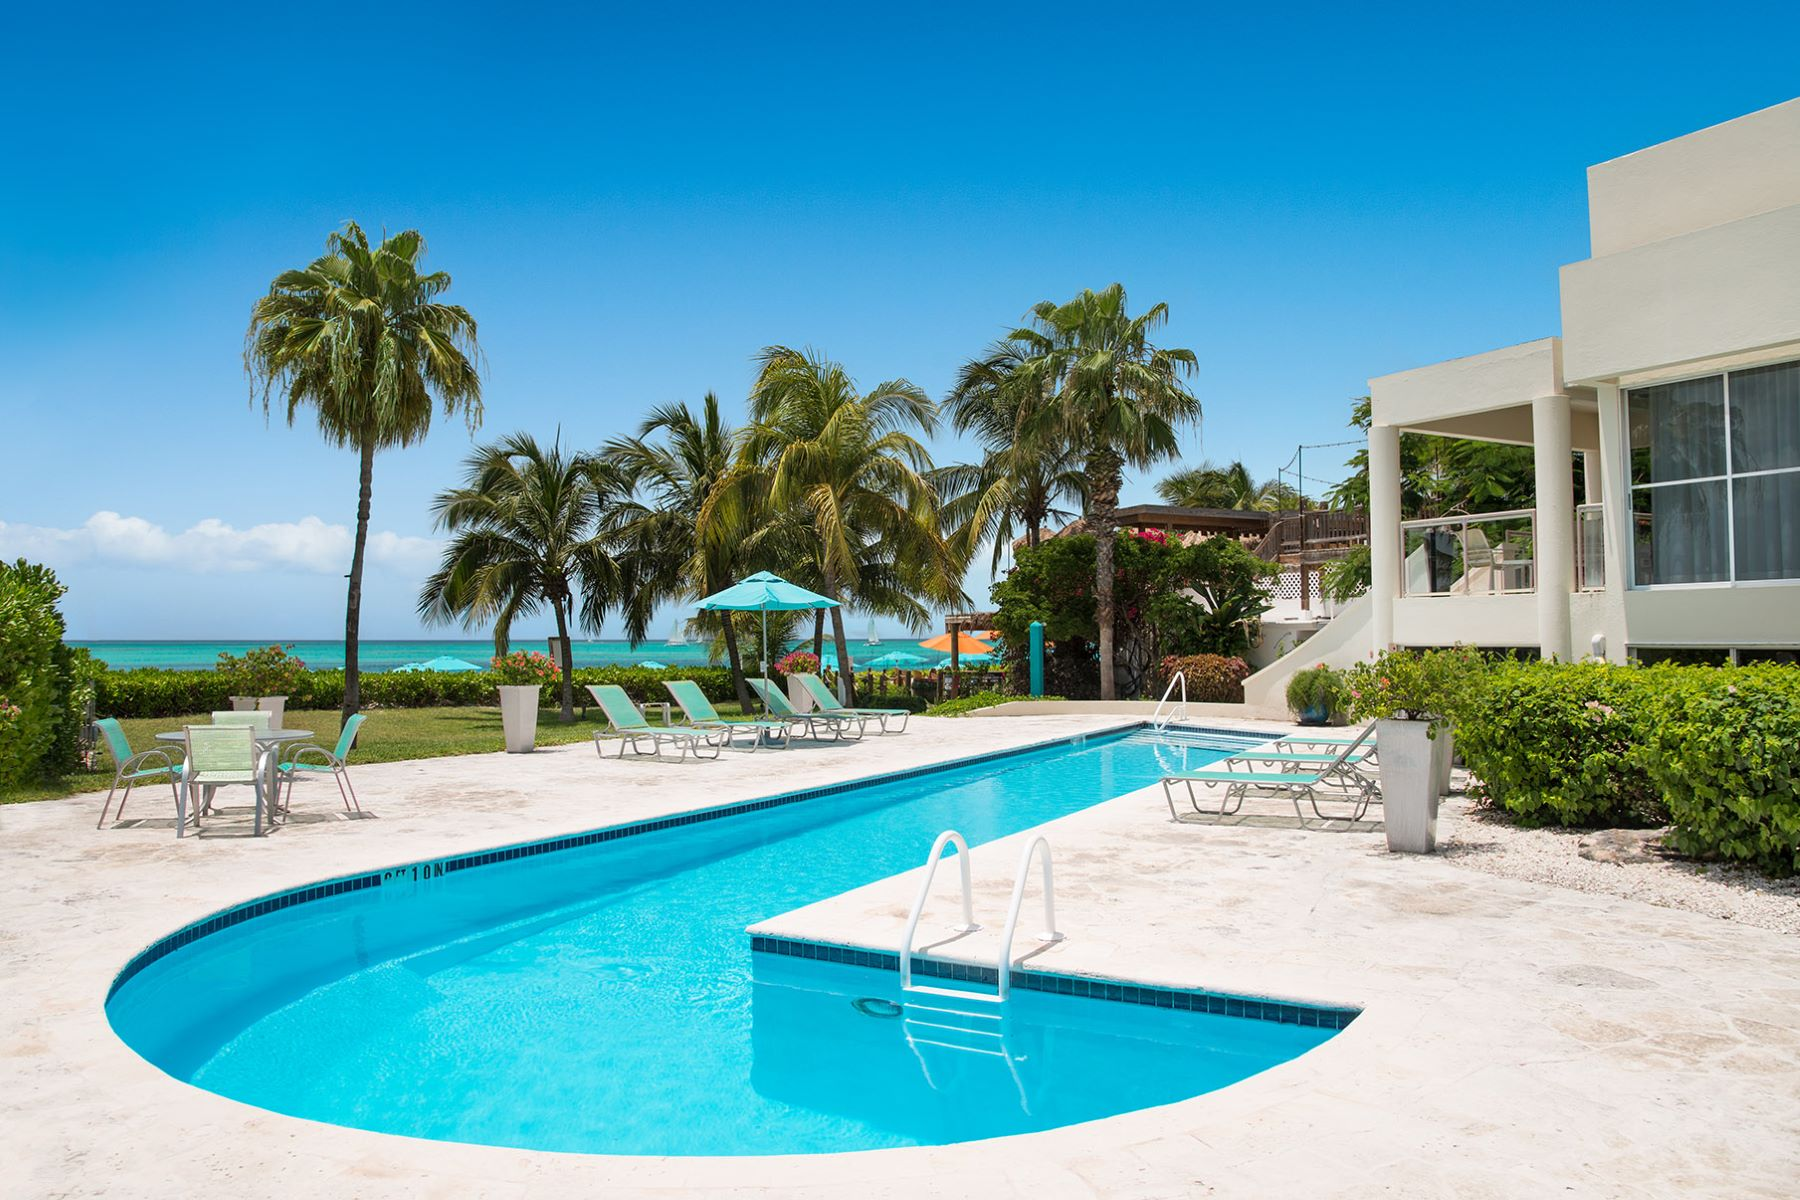 Additional photo for property listing at Coral Gardens - Suite 4205 Beachfront Grace Bay, Providenciales TKCA 1ZZ Turks And Caicos Islands